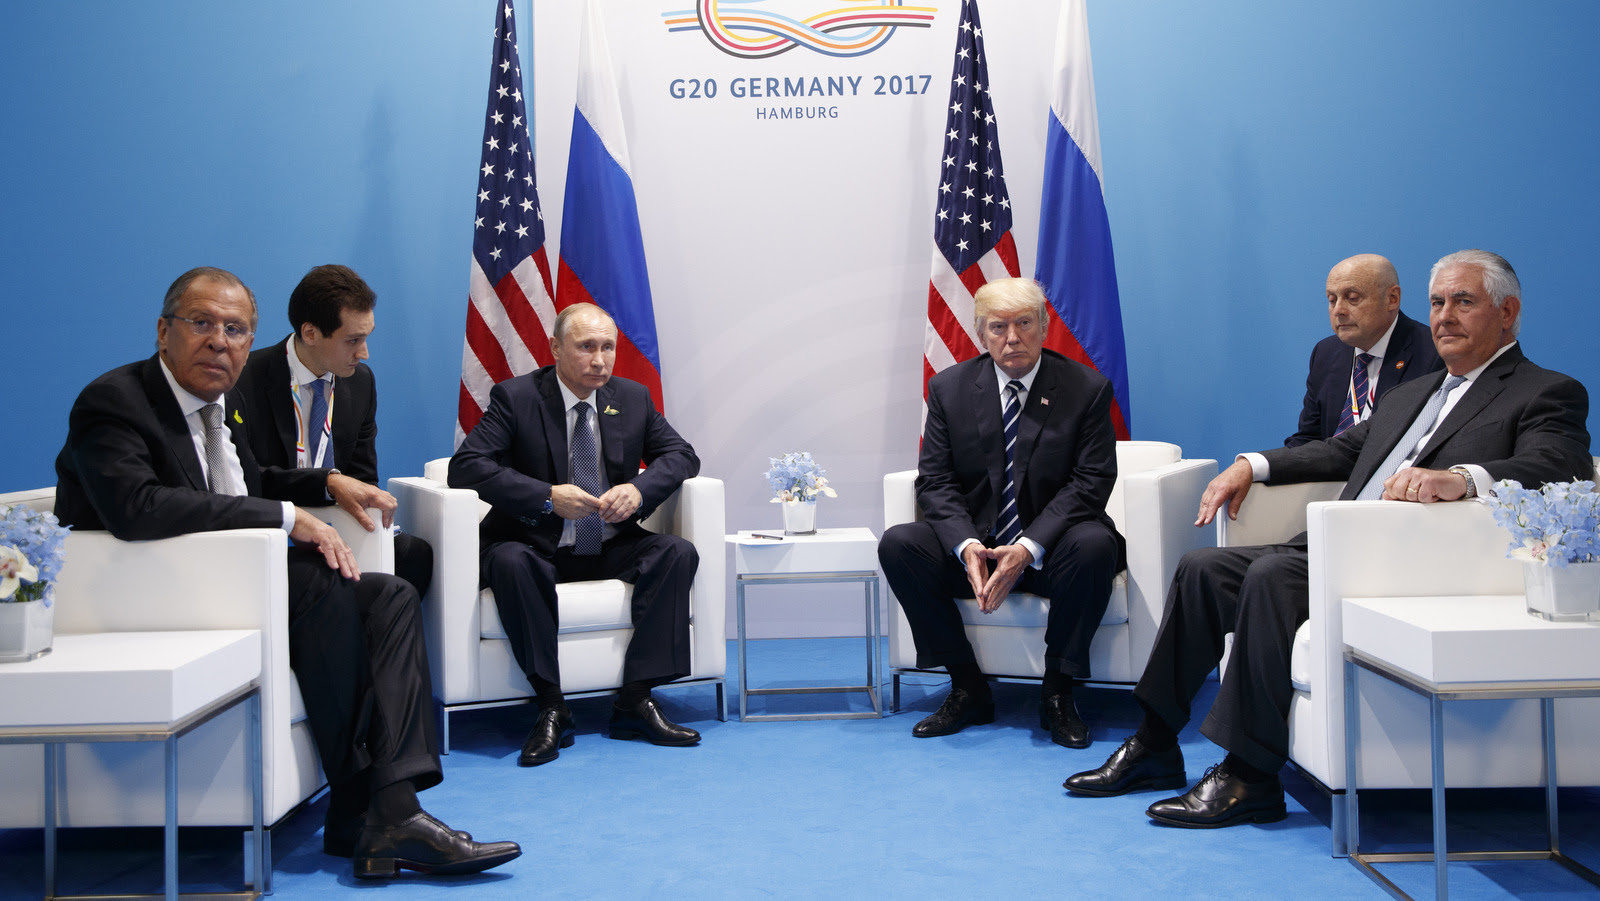 Donald Trump meets with Russian President Vladimir Putin at the G20 Summit, in Hamburg. A separate US-Russia-brokered truce for southern Syria, brokered by the U.S. and Russia, is finding support by both Iran and Israel.Russian Foreign Minister Sergey Lavrov is at left, Secretary of State Rex Tillerson is at right. (AP/Evan Vucci)